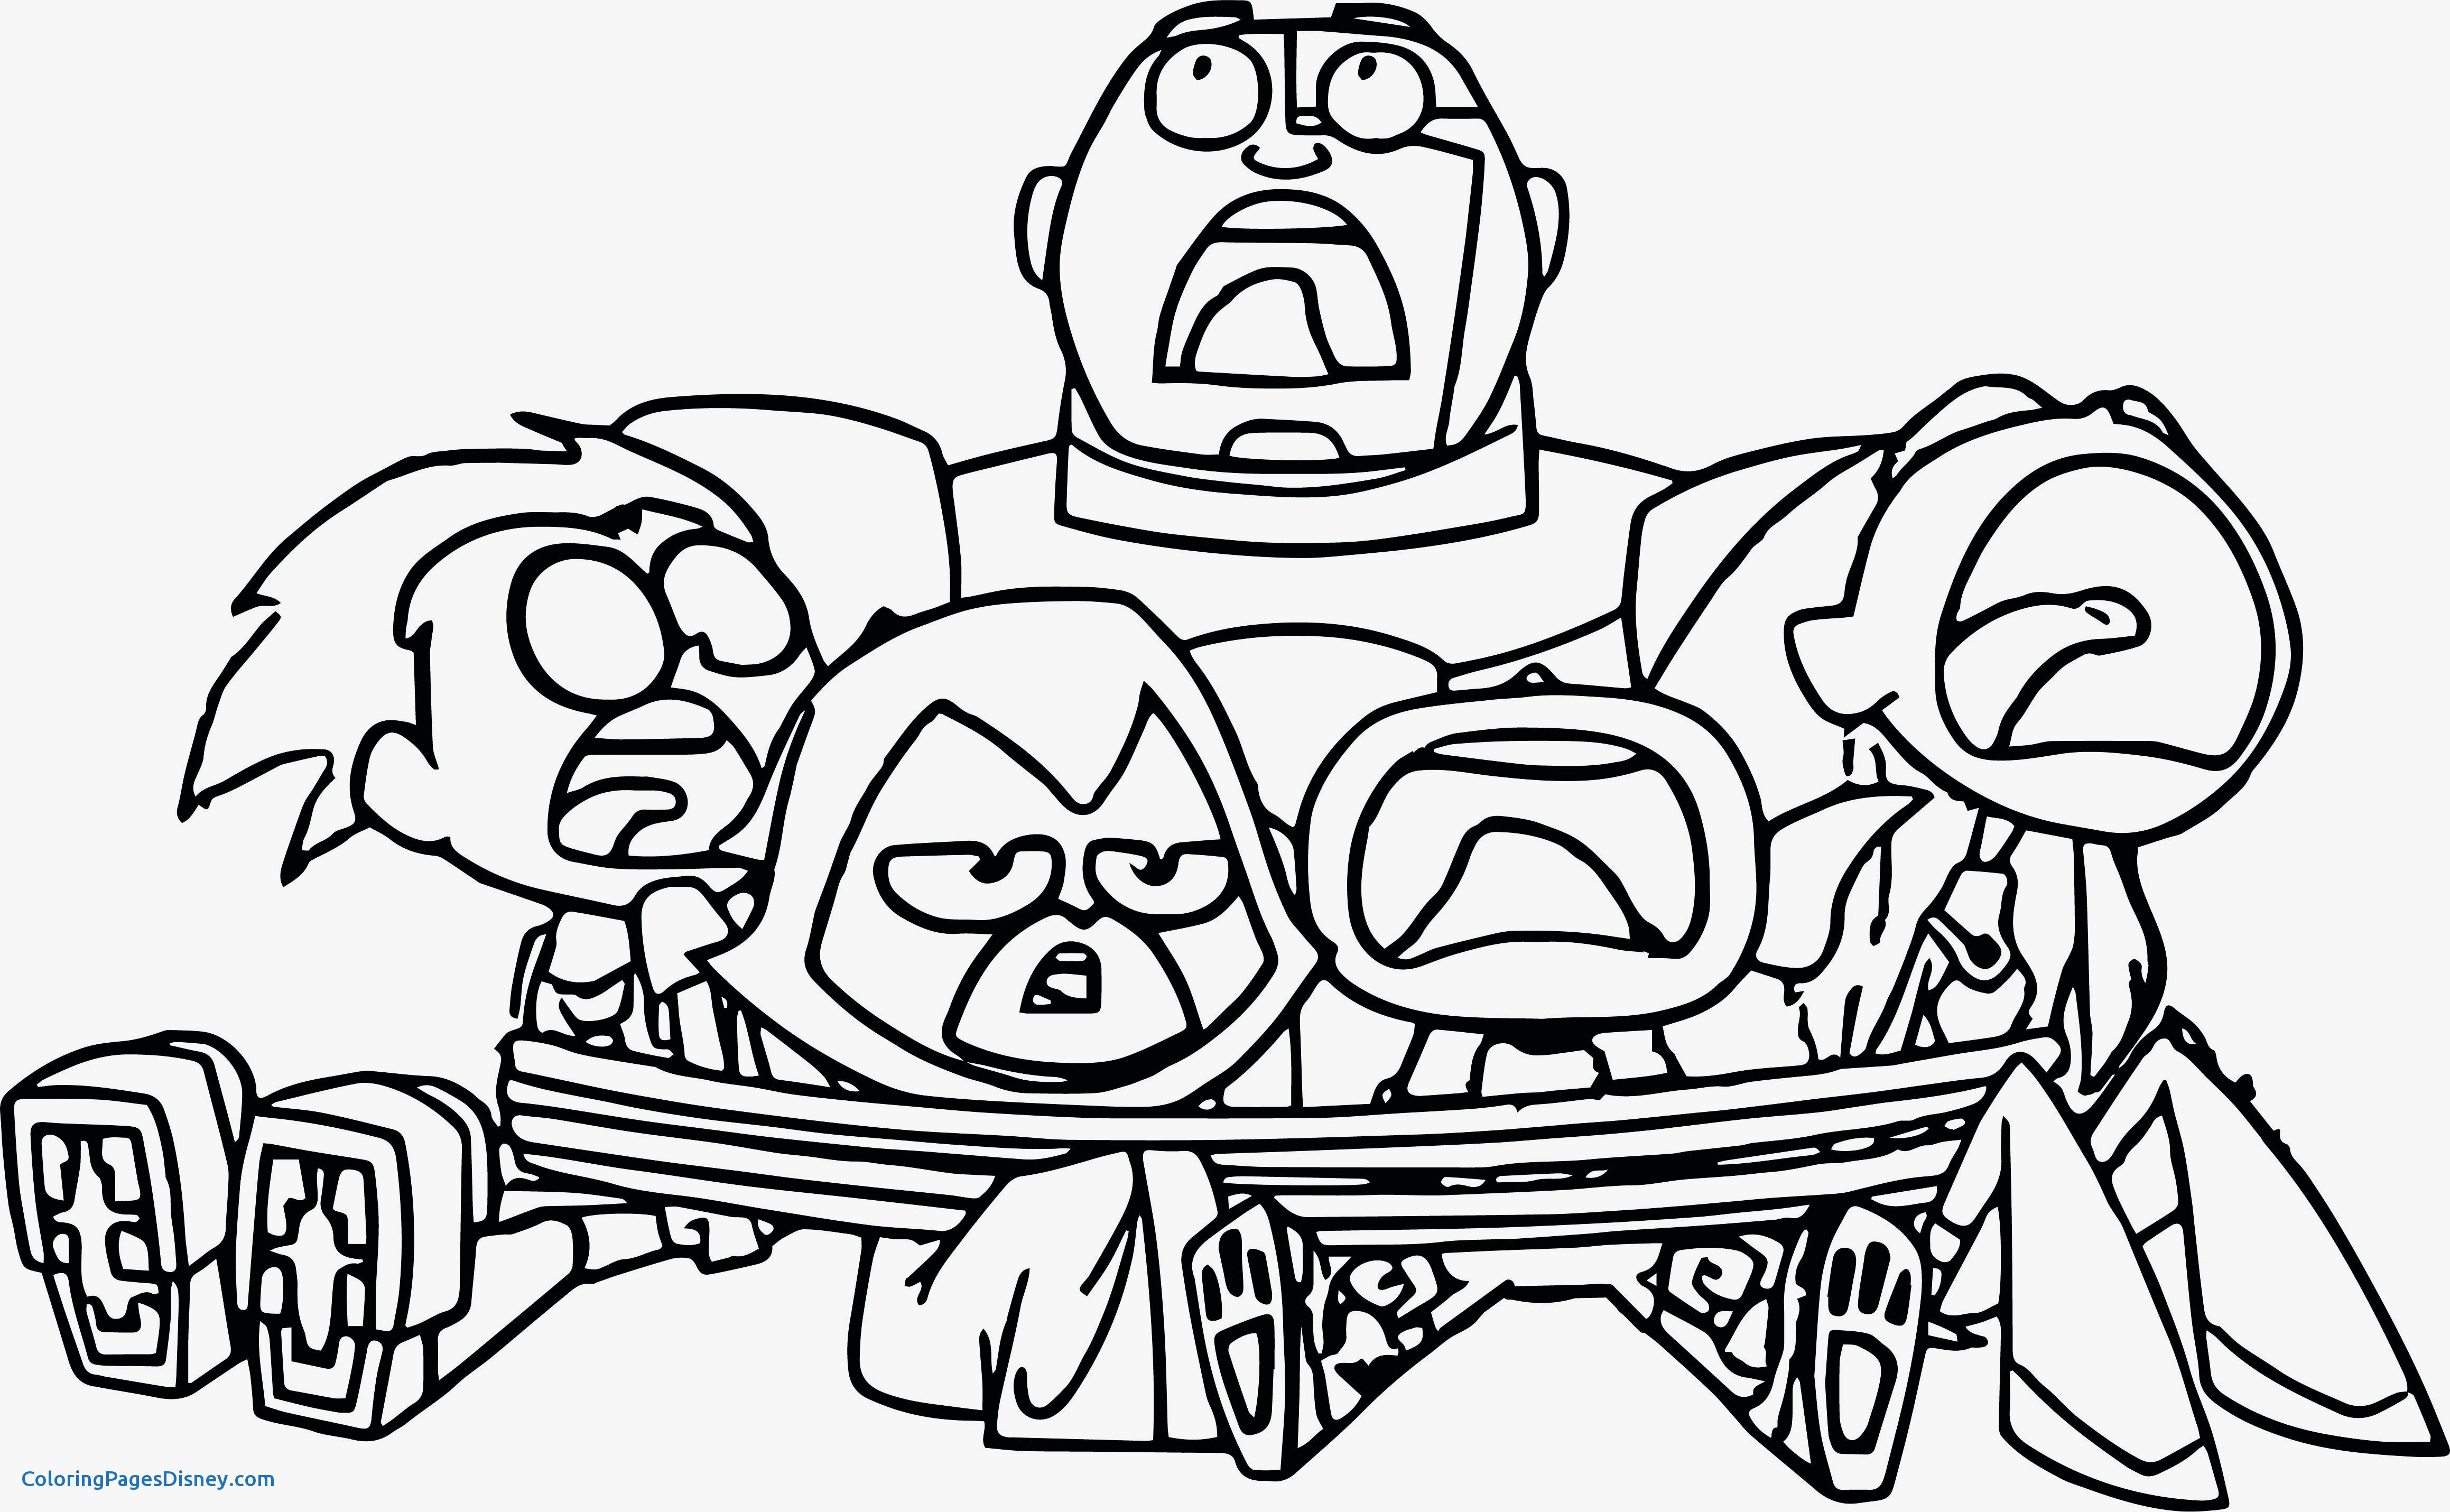 titans coloring pages 21 elegant image of teen titans coloring pages birijuscom pages coloring titans